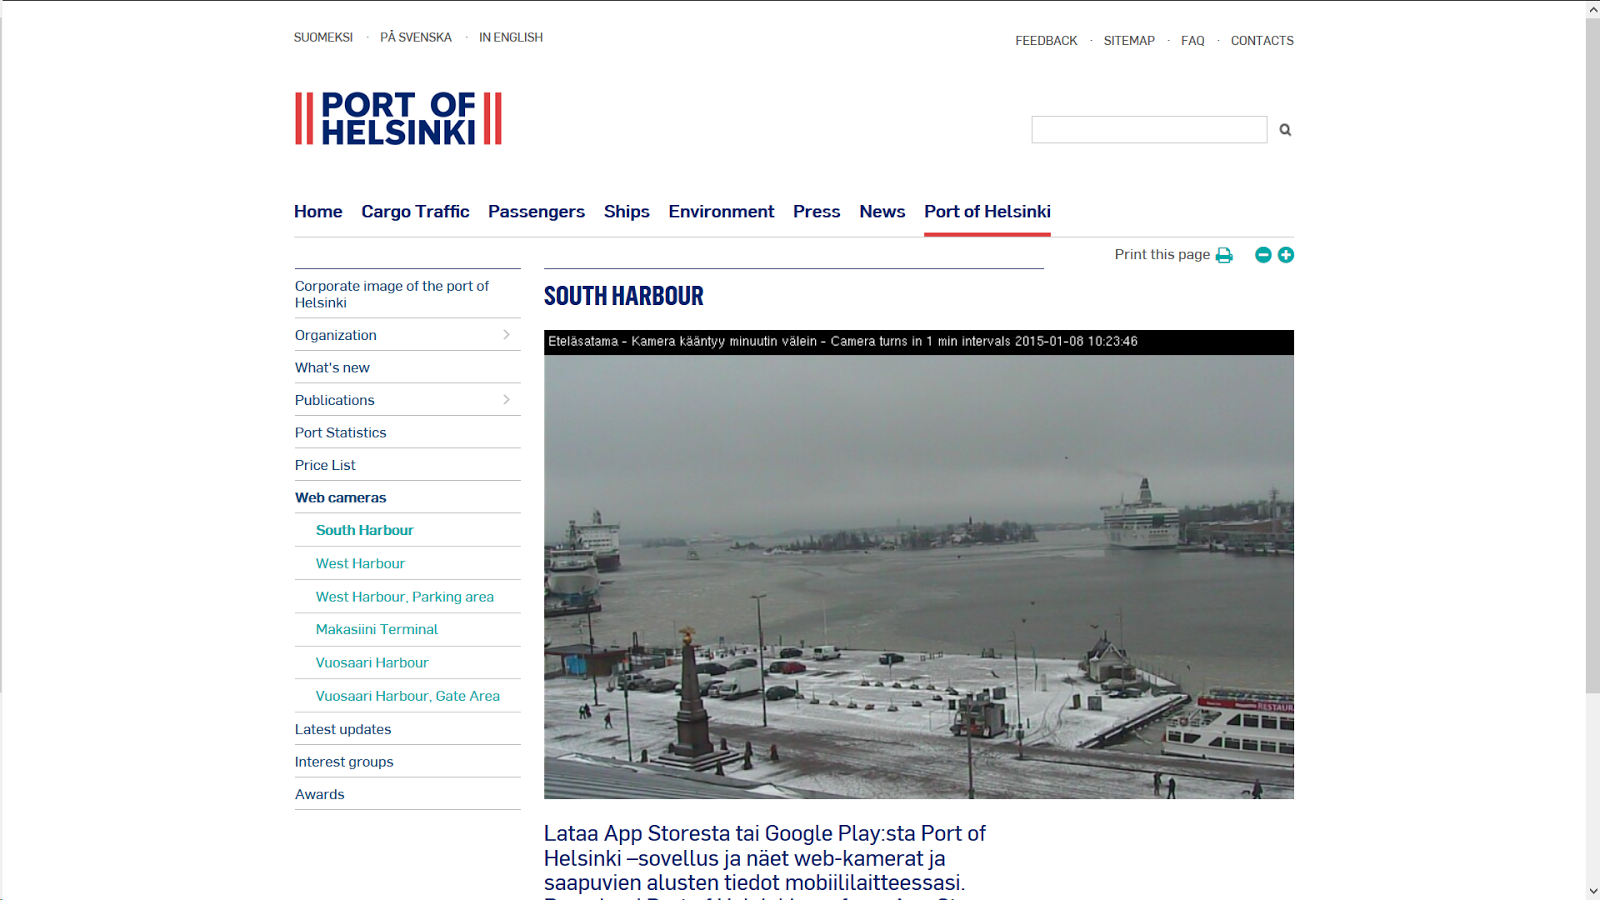 http://www.portofhelsinki.fi/port_of_helsinki/web_cameras/south_harbour